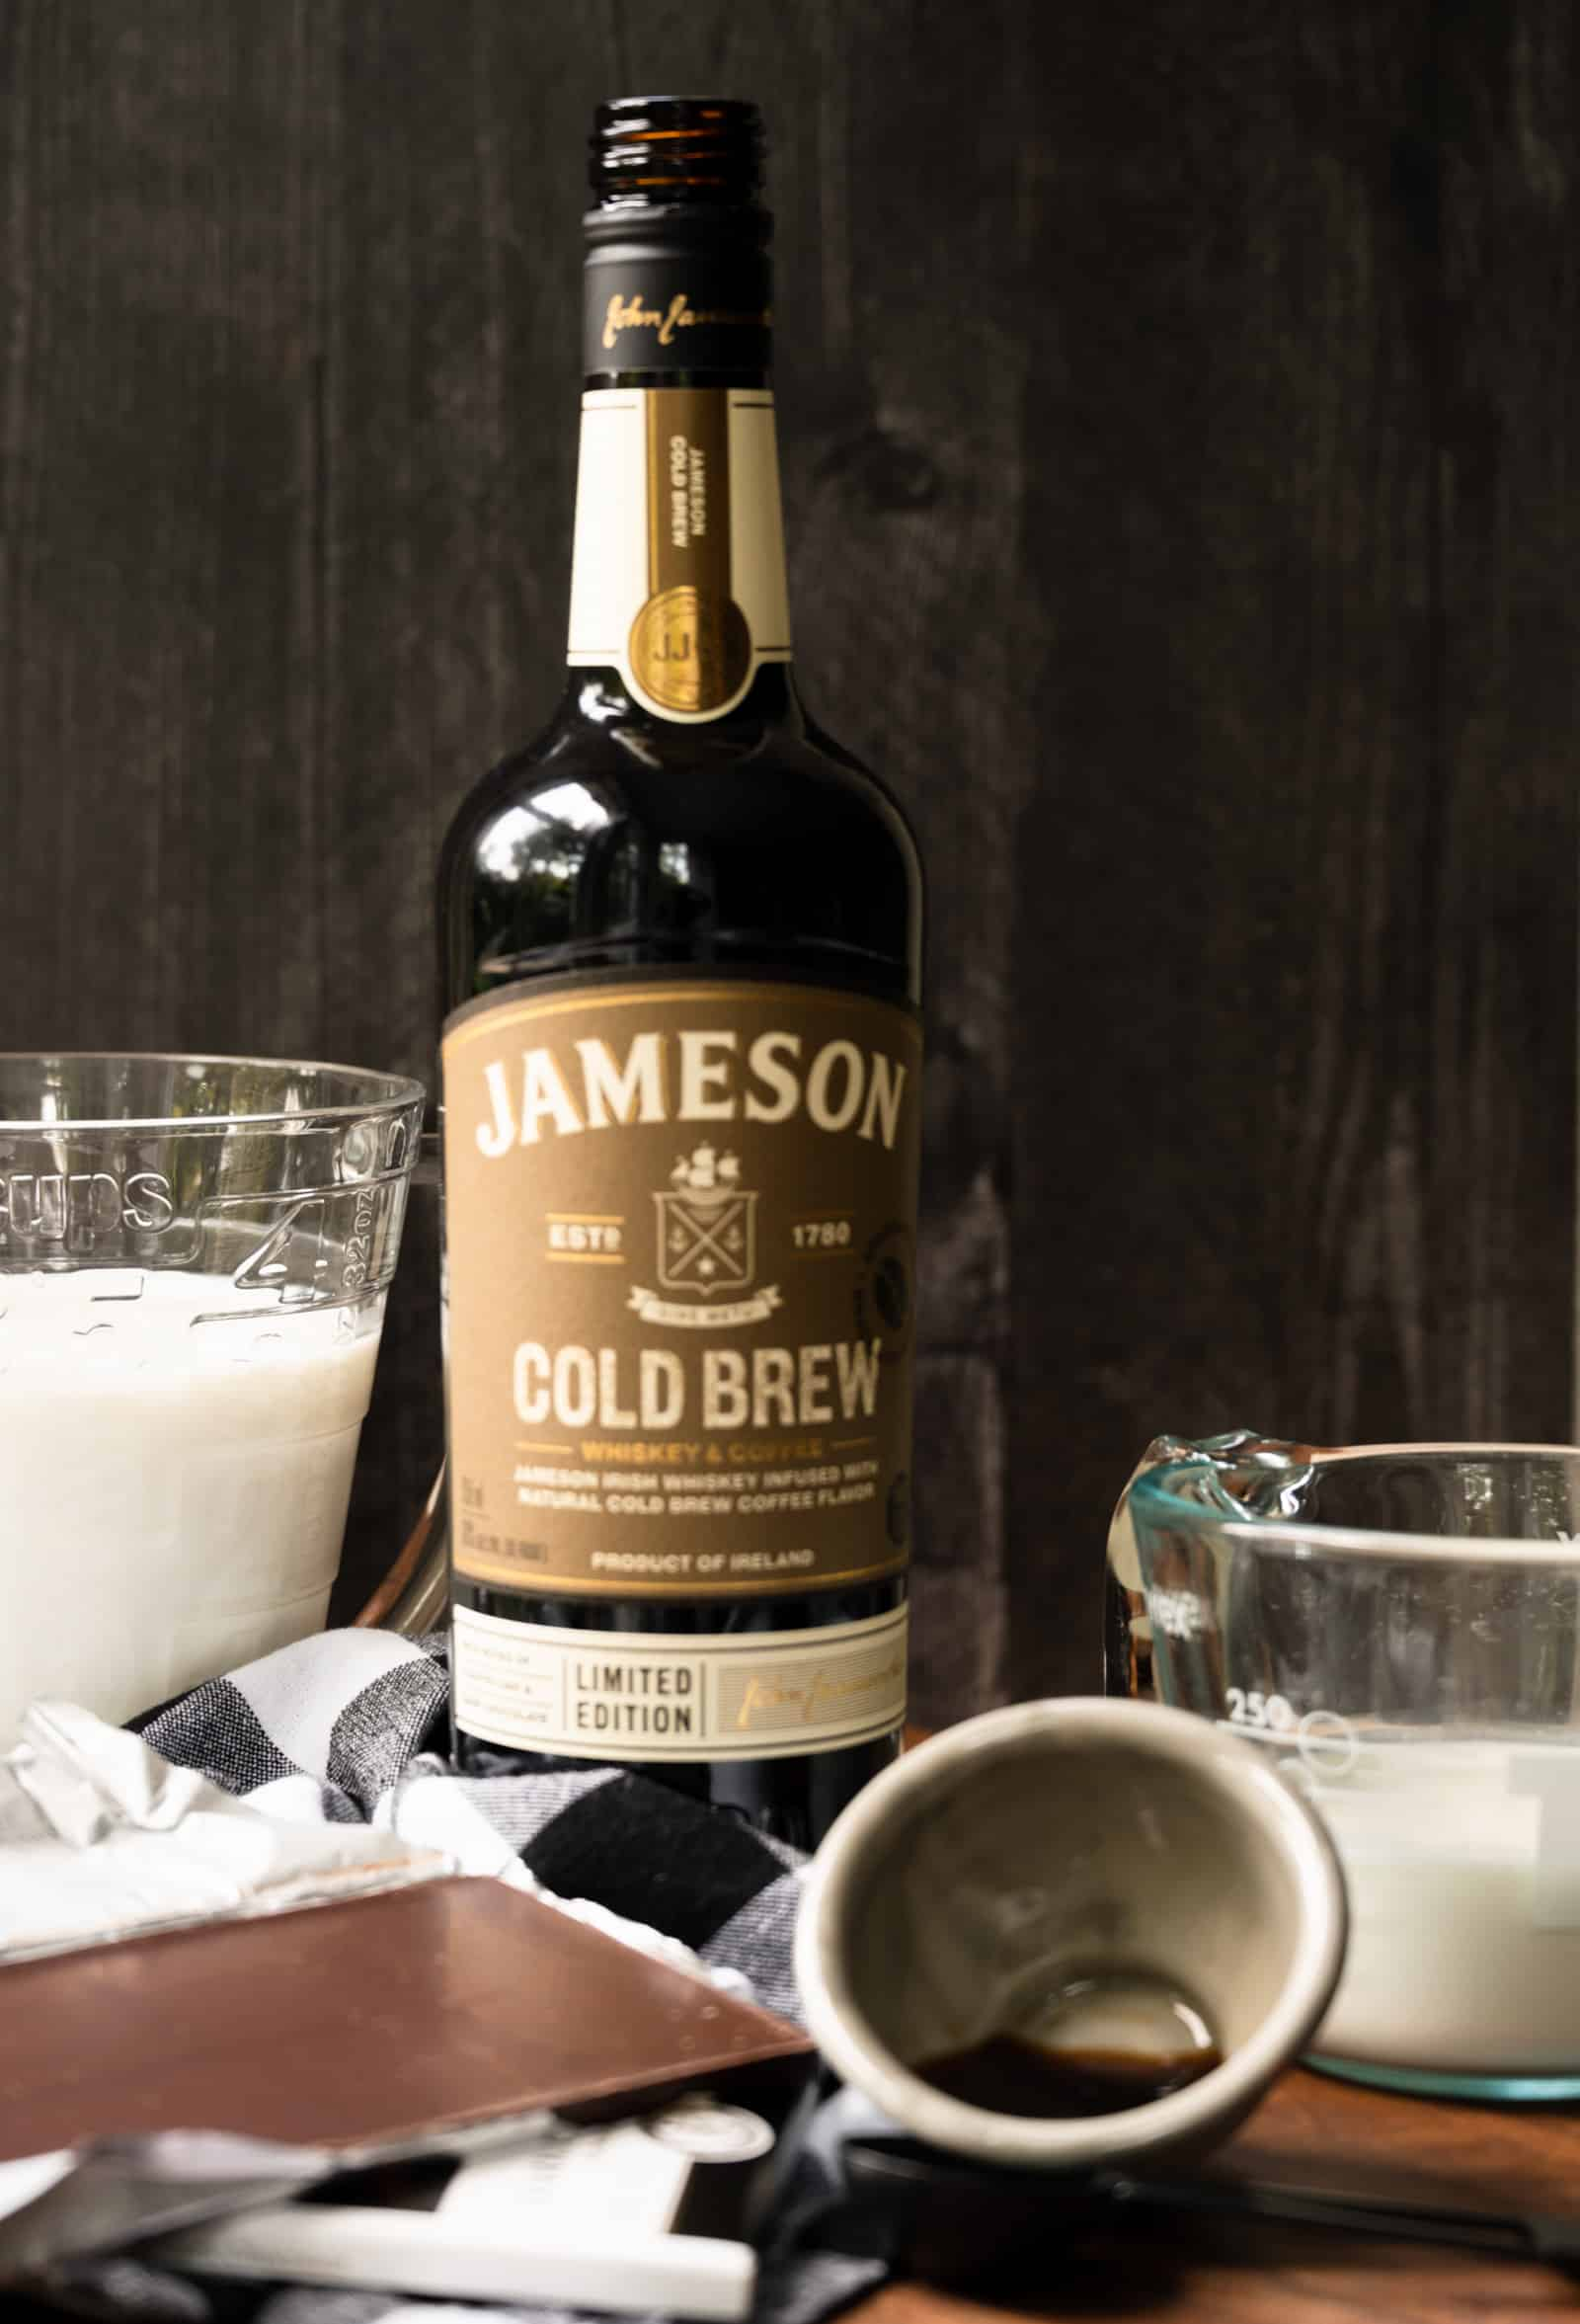 bottle of Jameson's Cold Brew with measuring cups of milk and chocolate